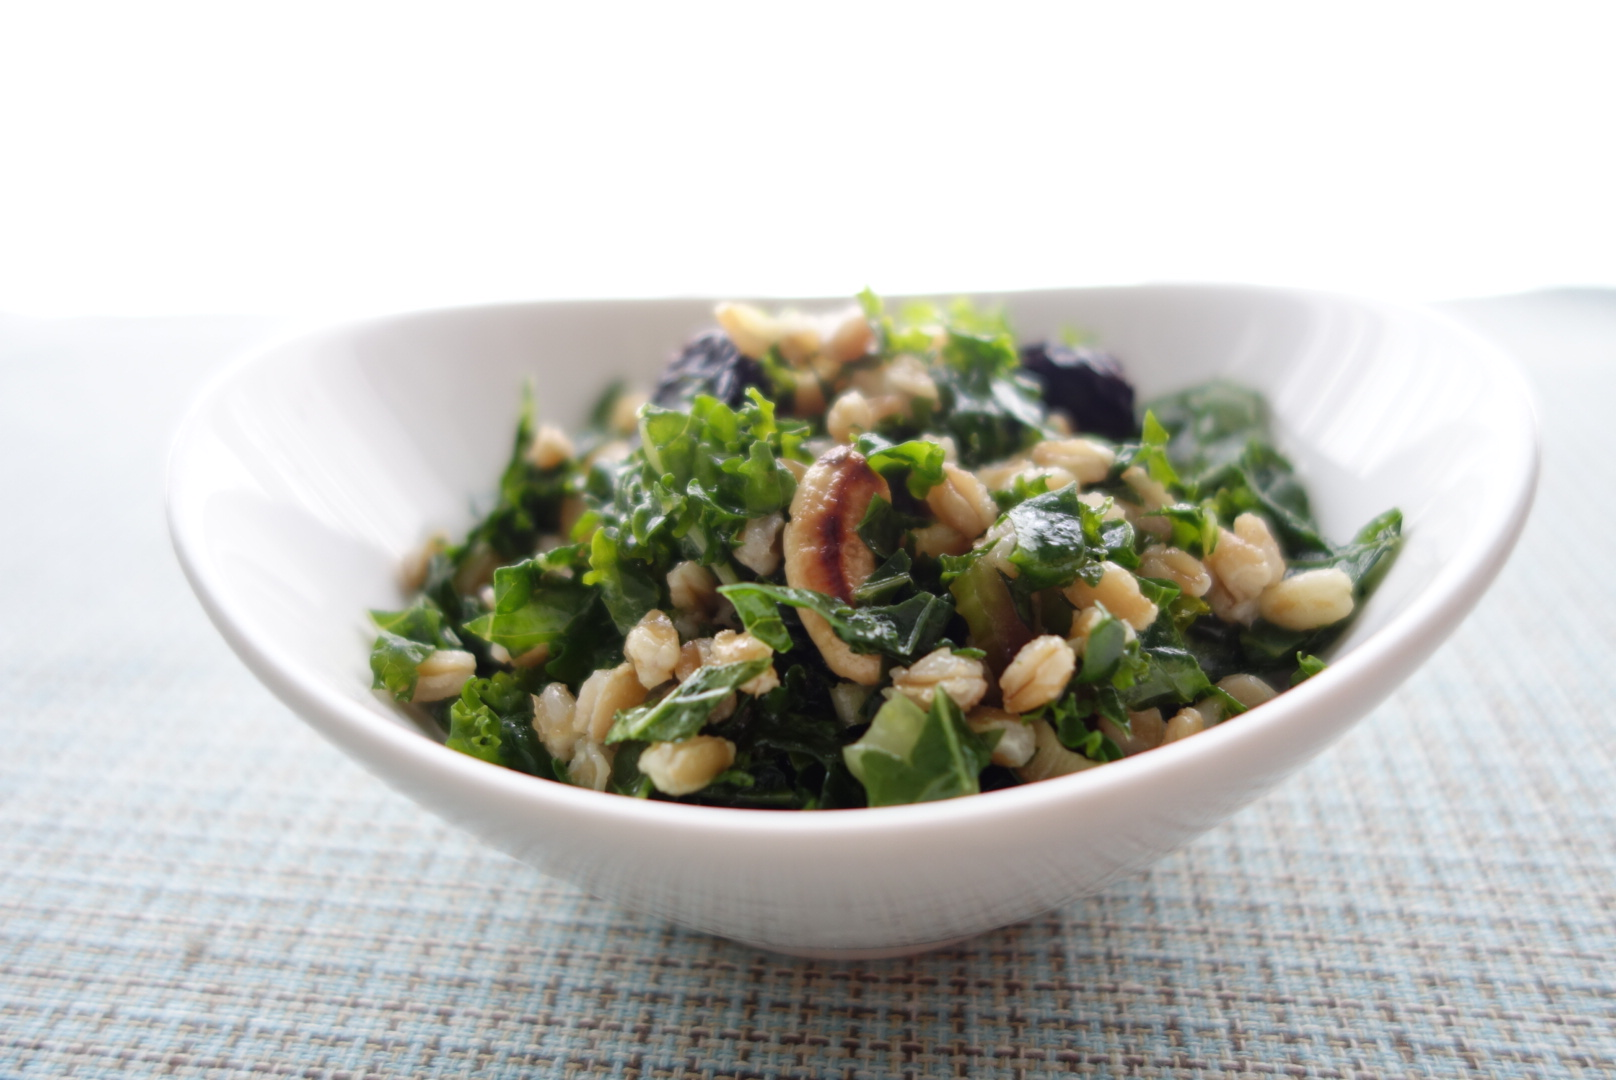 Kale Salad With Cherries And Pecans Recipes — Dishmaps